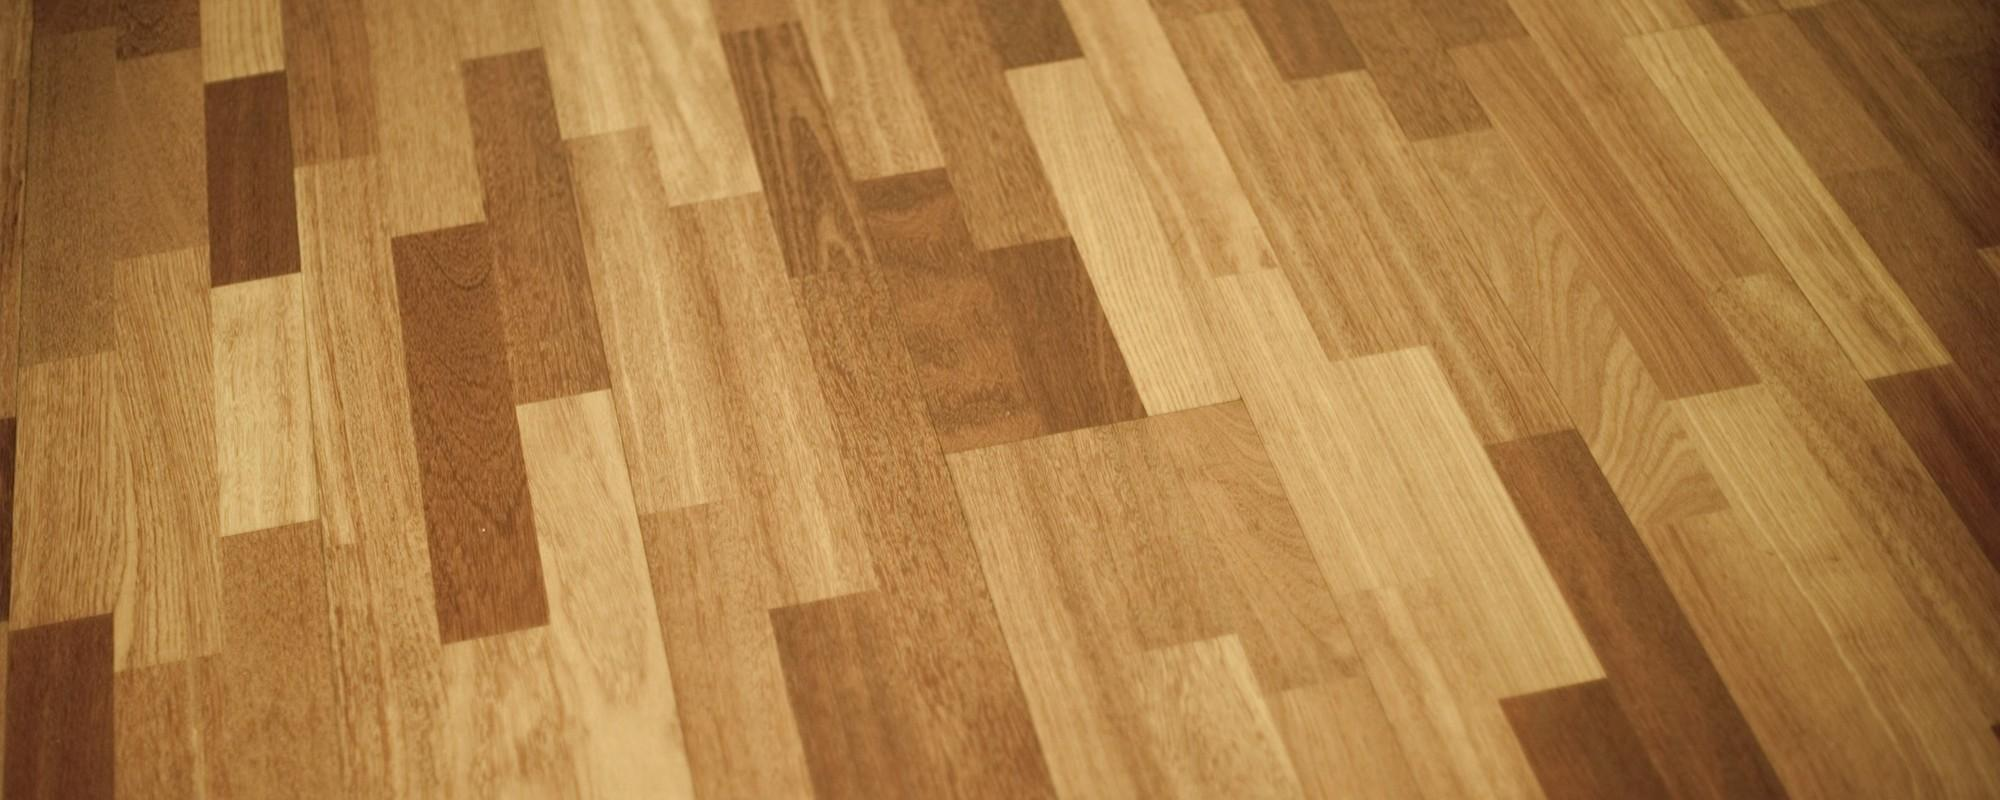 Best Way Clean Laminate Floors Without Streaks Carpet